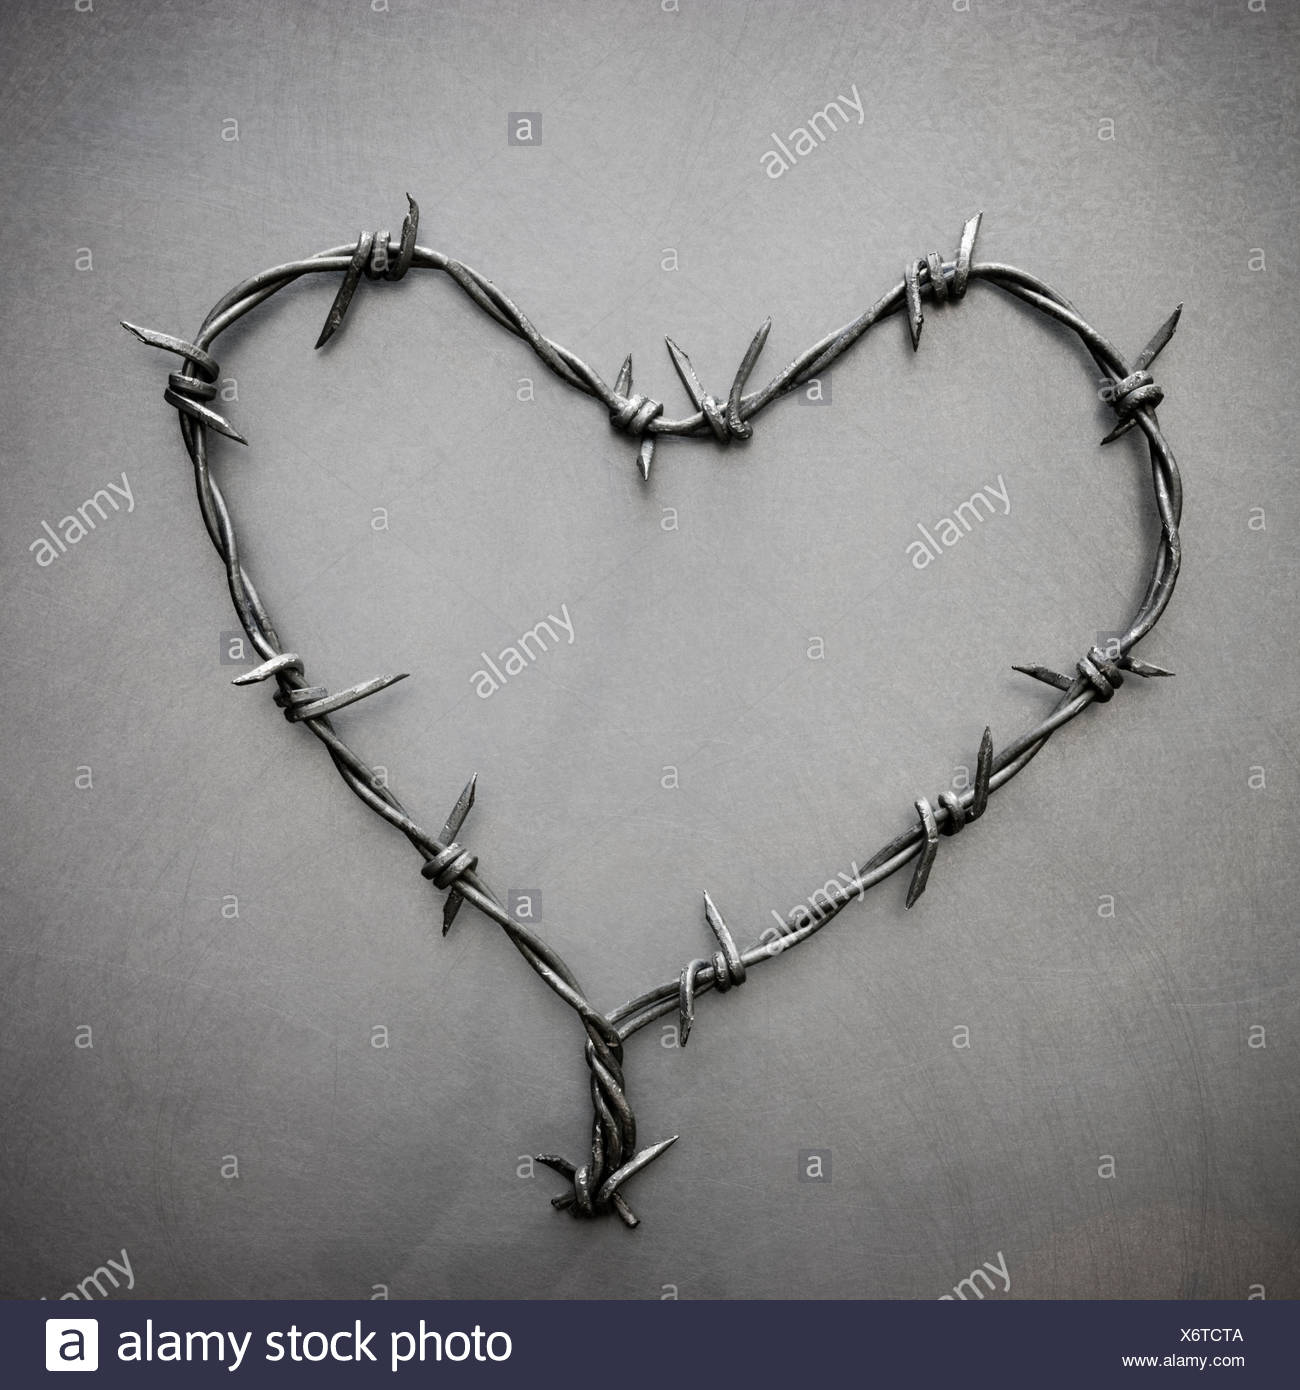 barbed wire heart Stock Photo: 279590762 - Alamy